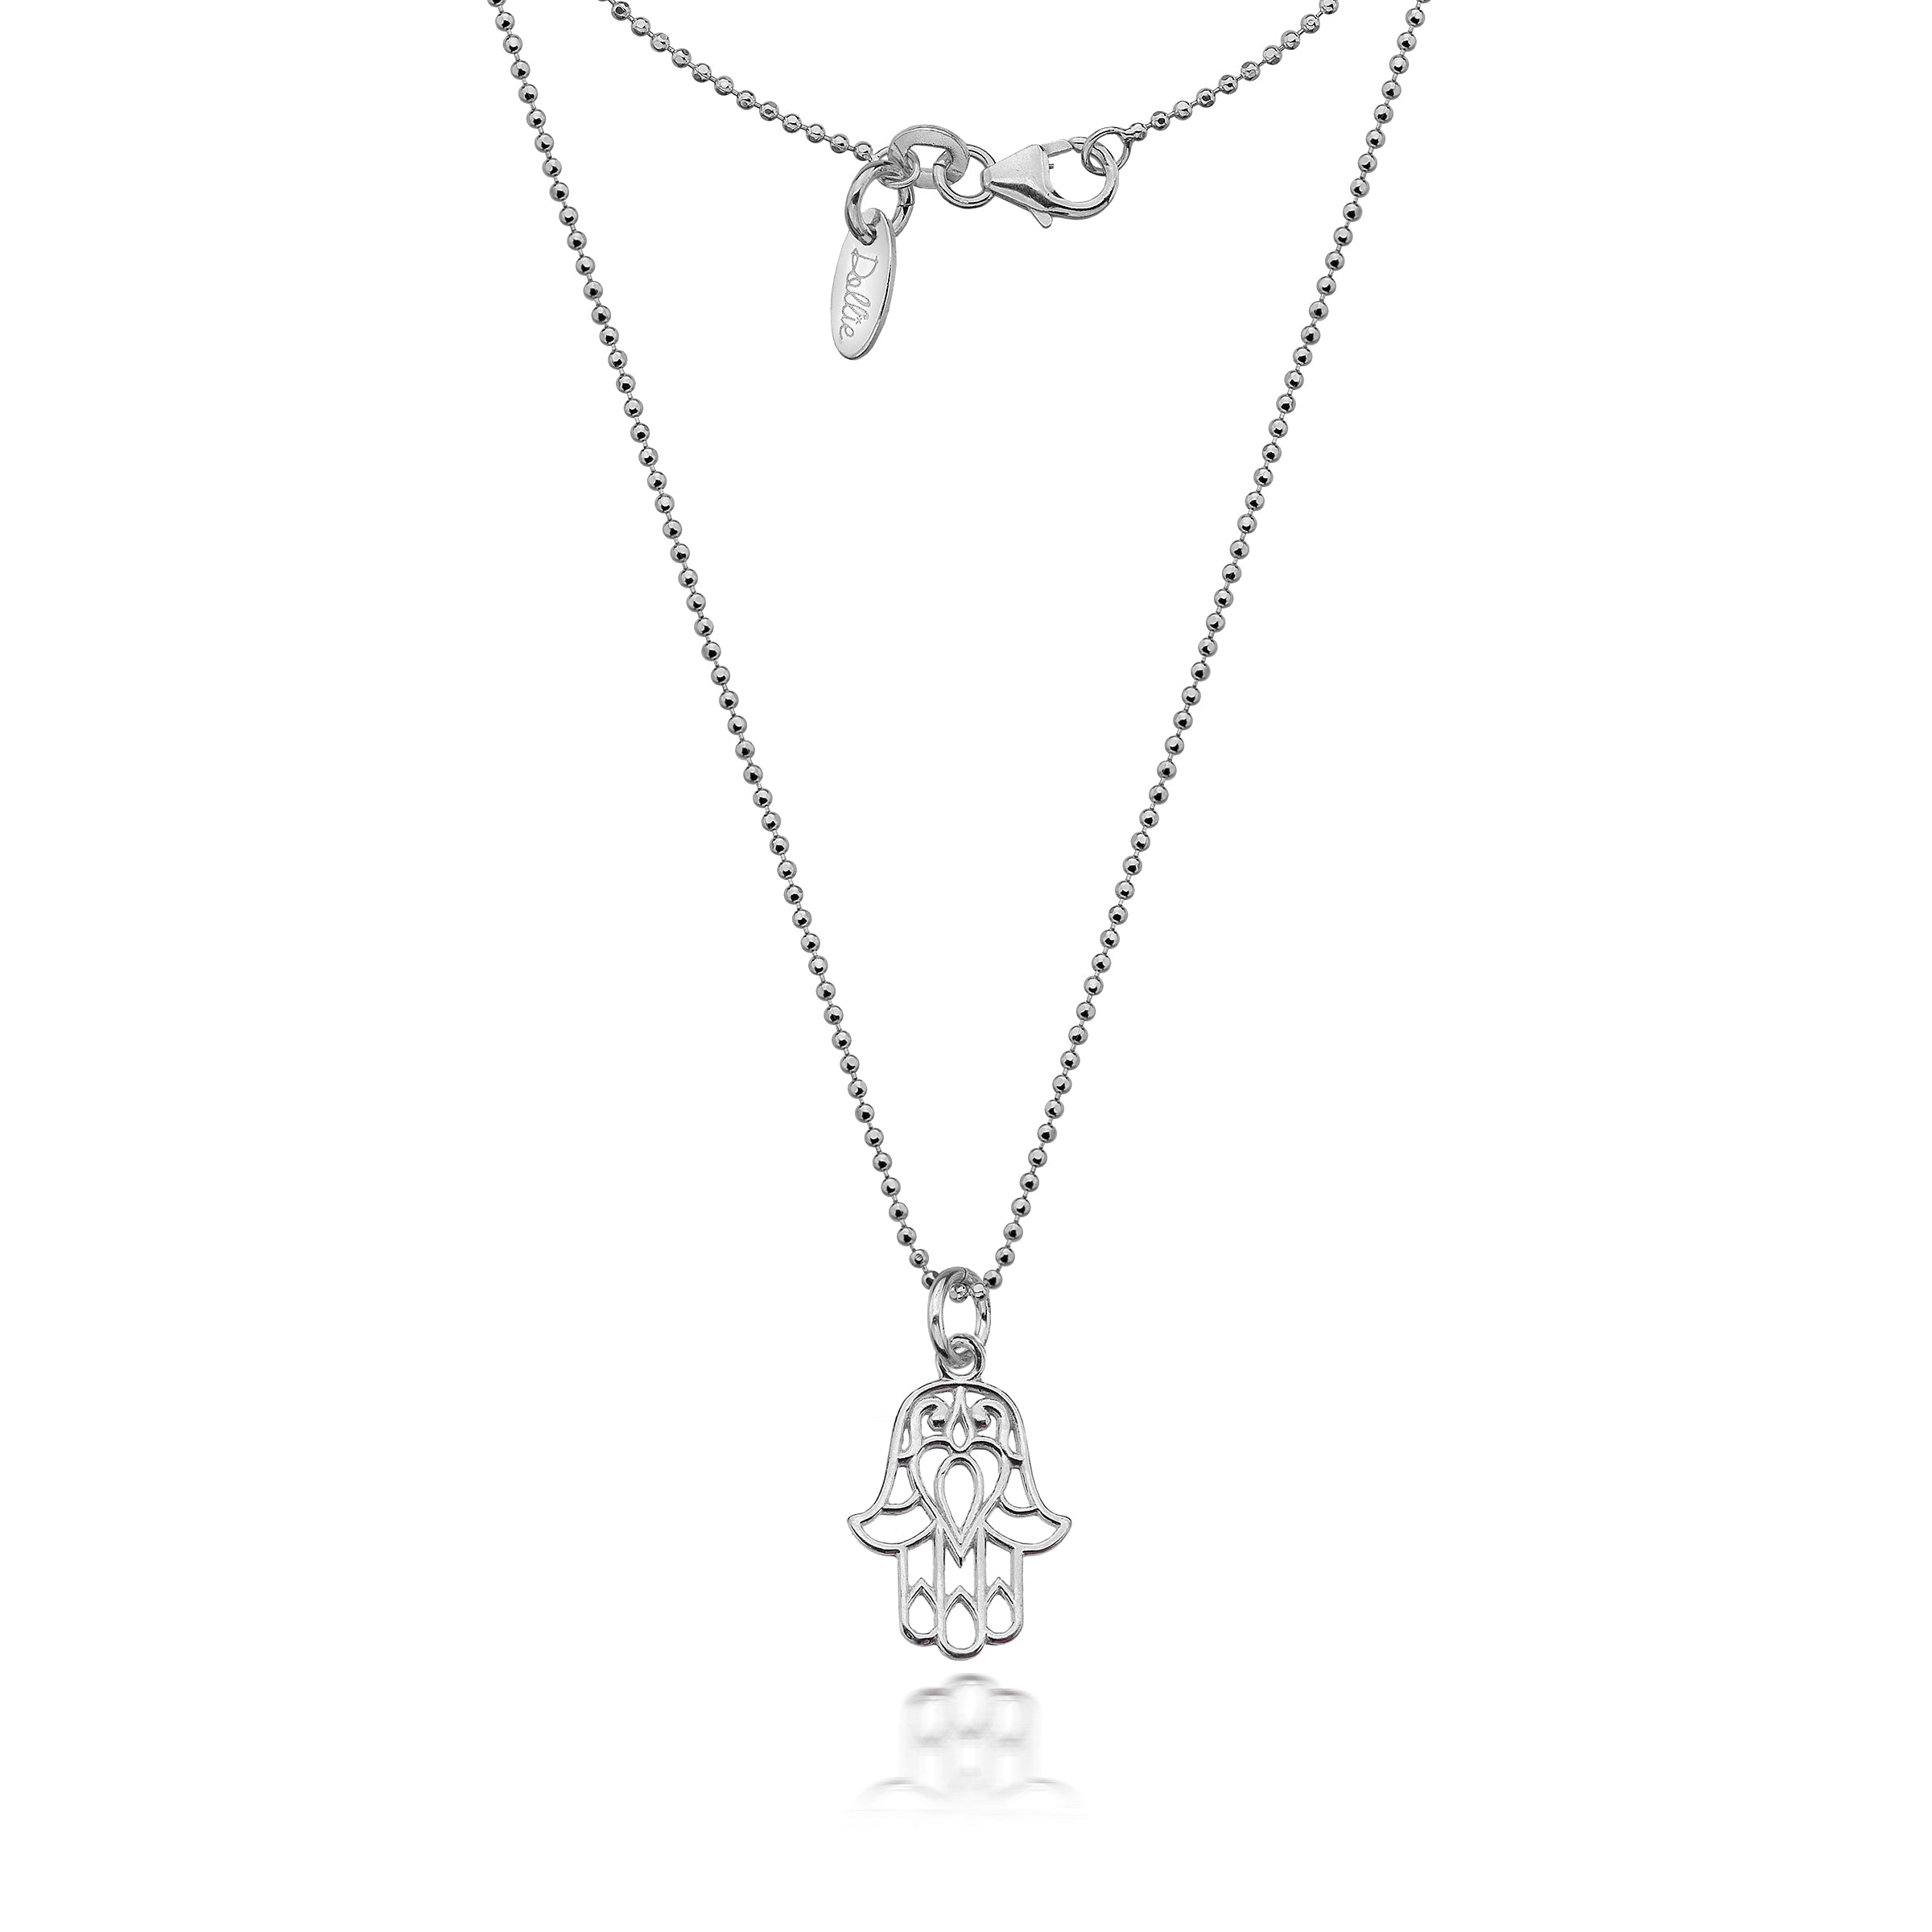 euphoria of small silver hand image product c hamsa necklace